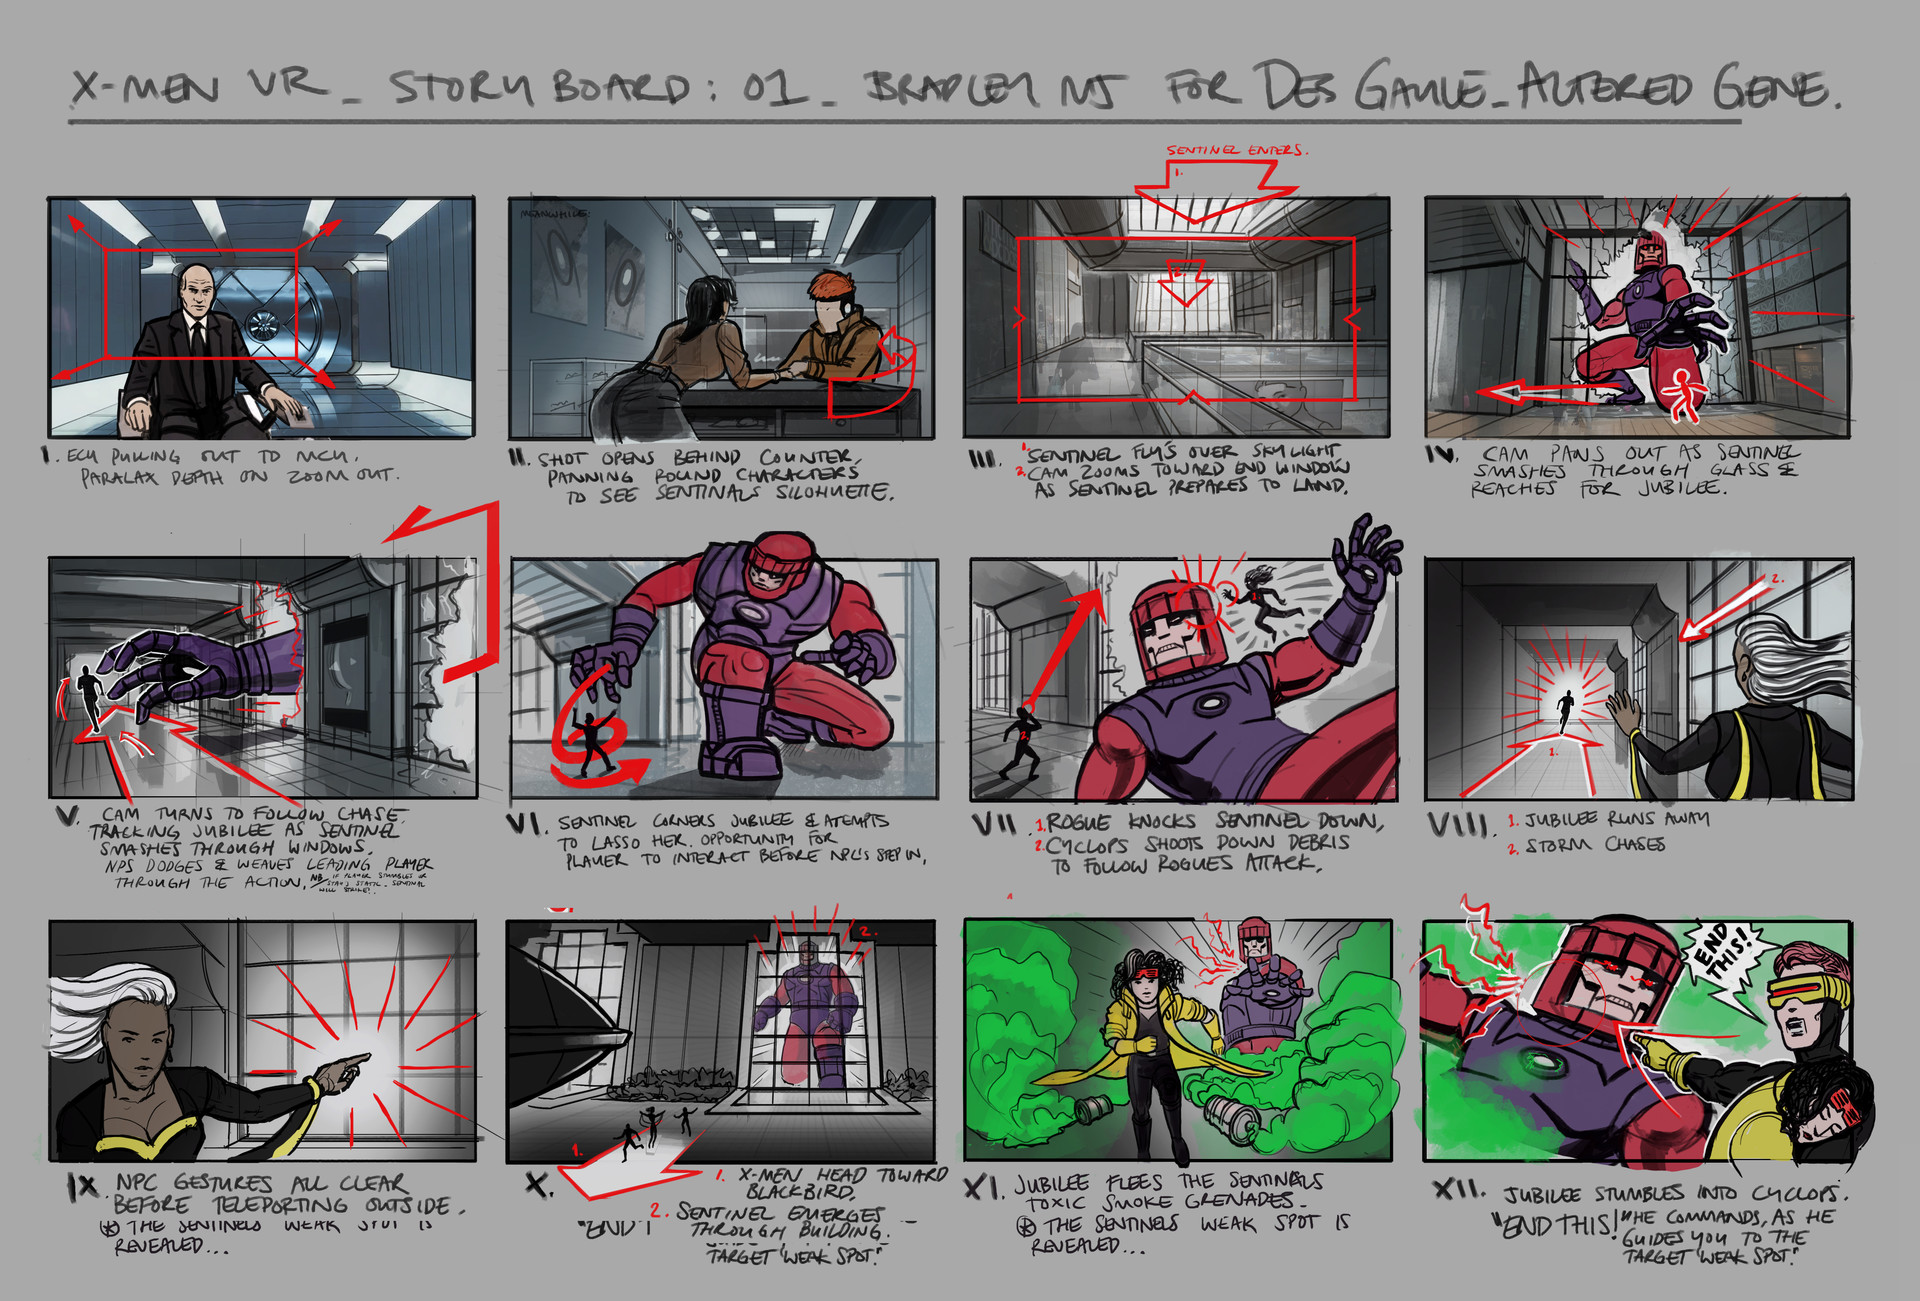 Bradley morgan johnson x men vr storyboard 01 flat 01